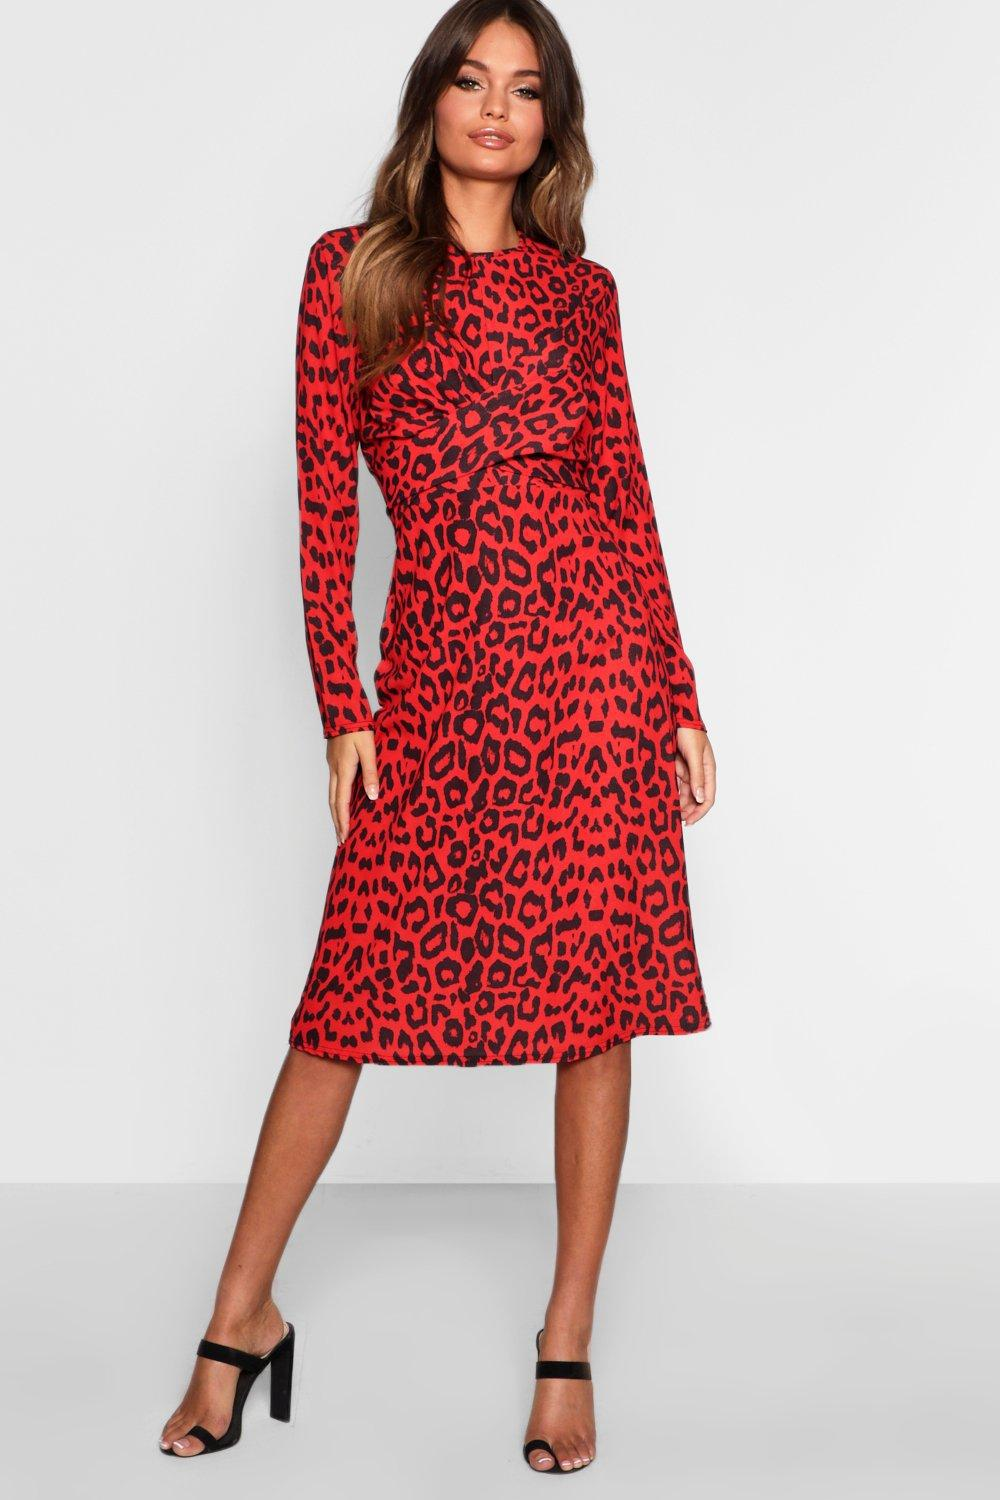 Boohoo Red Leopard Knot Front Skater Dress in Red - Lyst 8c4c880a6